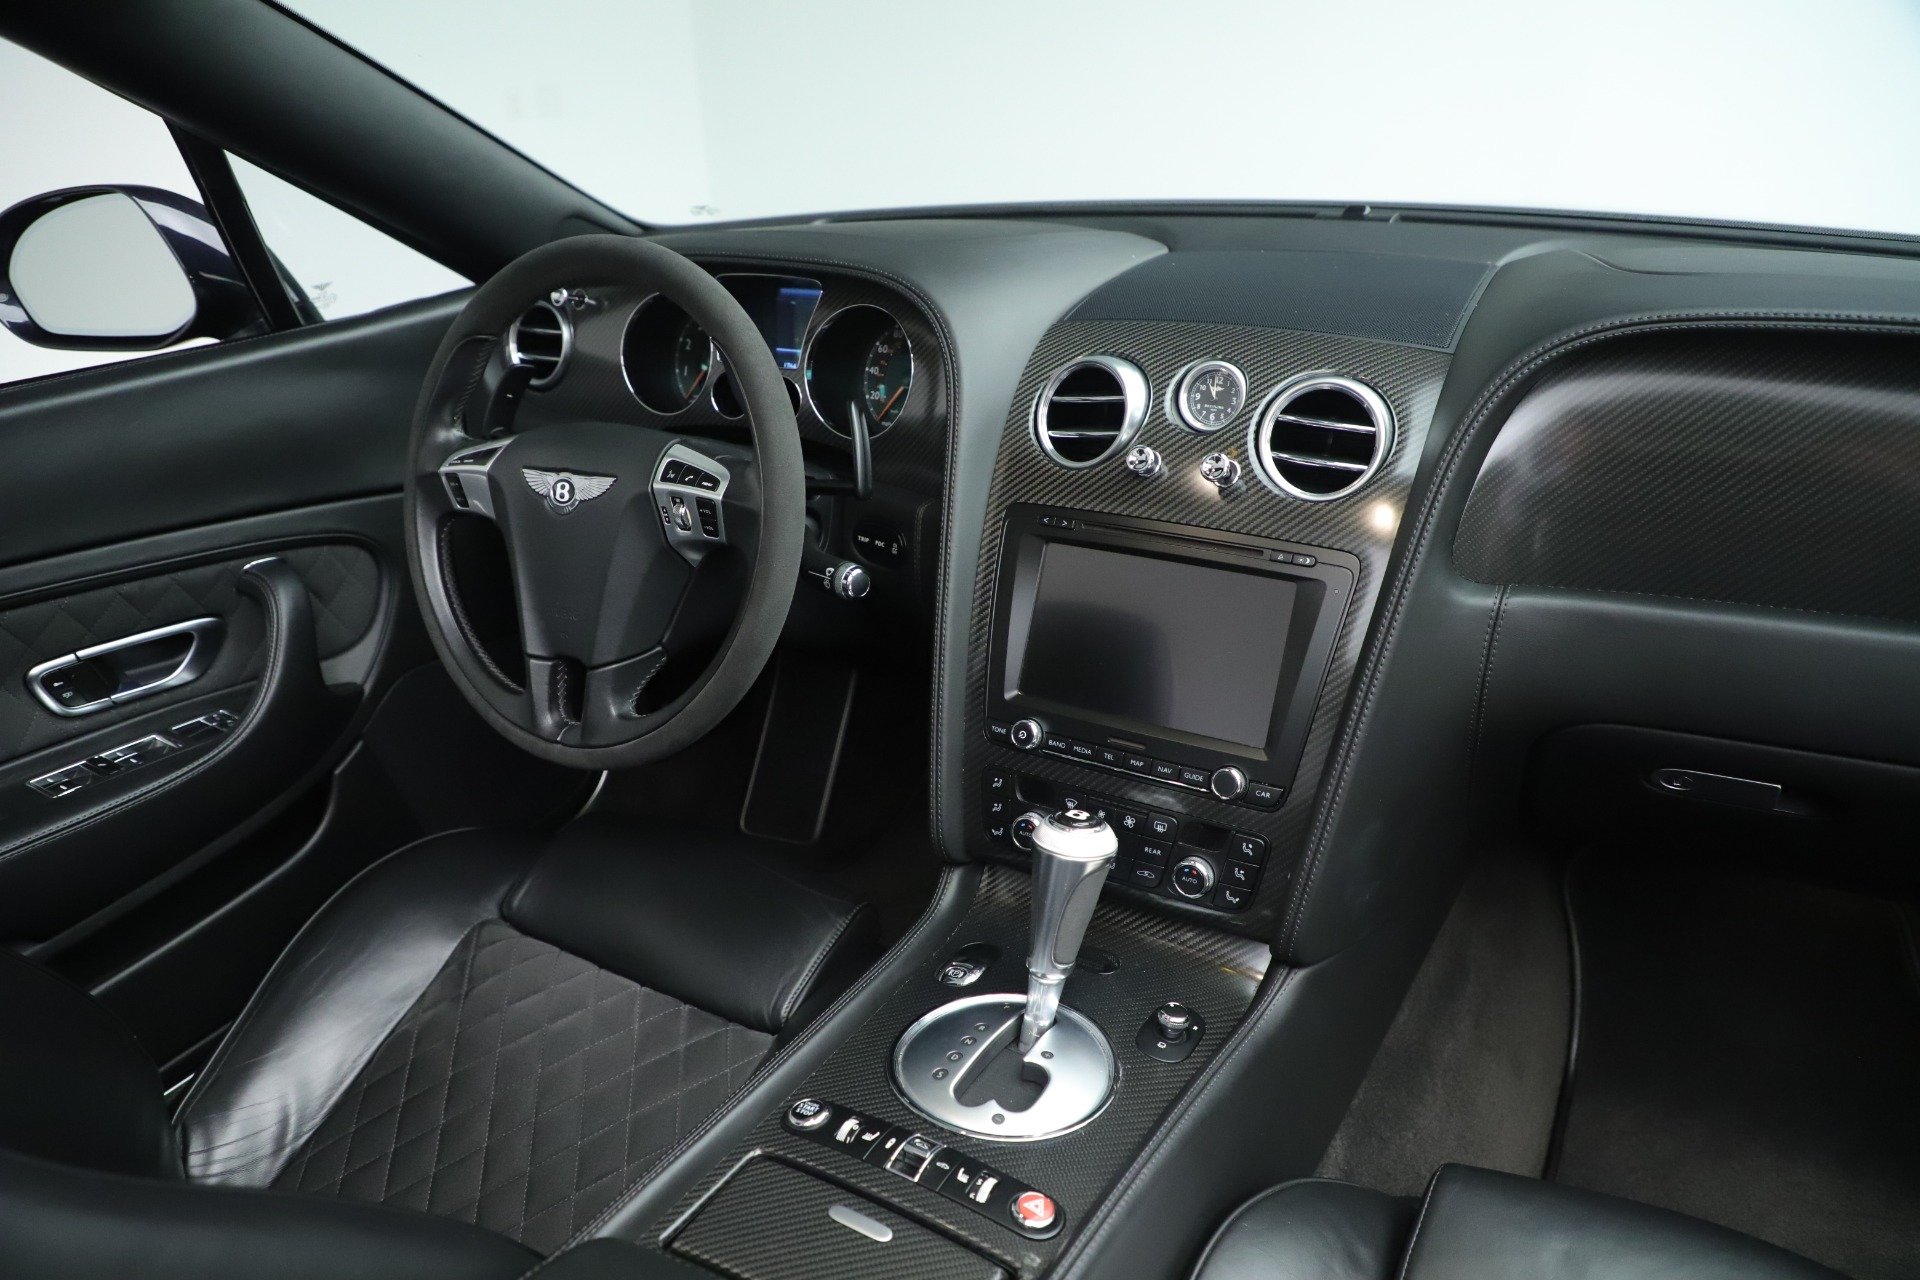 Used 2012 Bentley Continental GT Supersports For Sale In Westport, CT 3214_p31